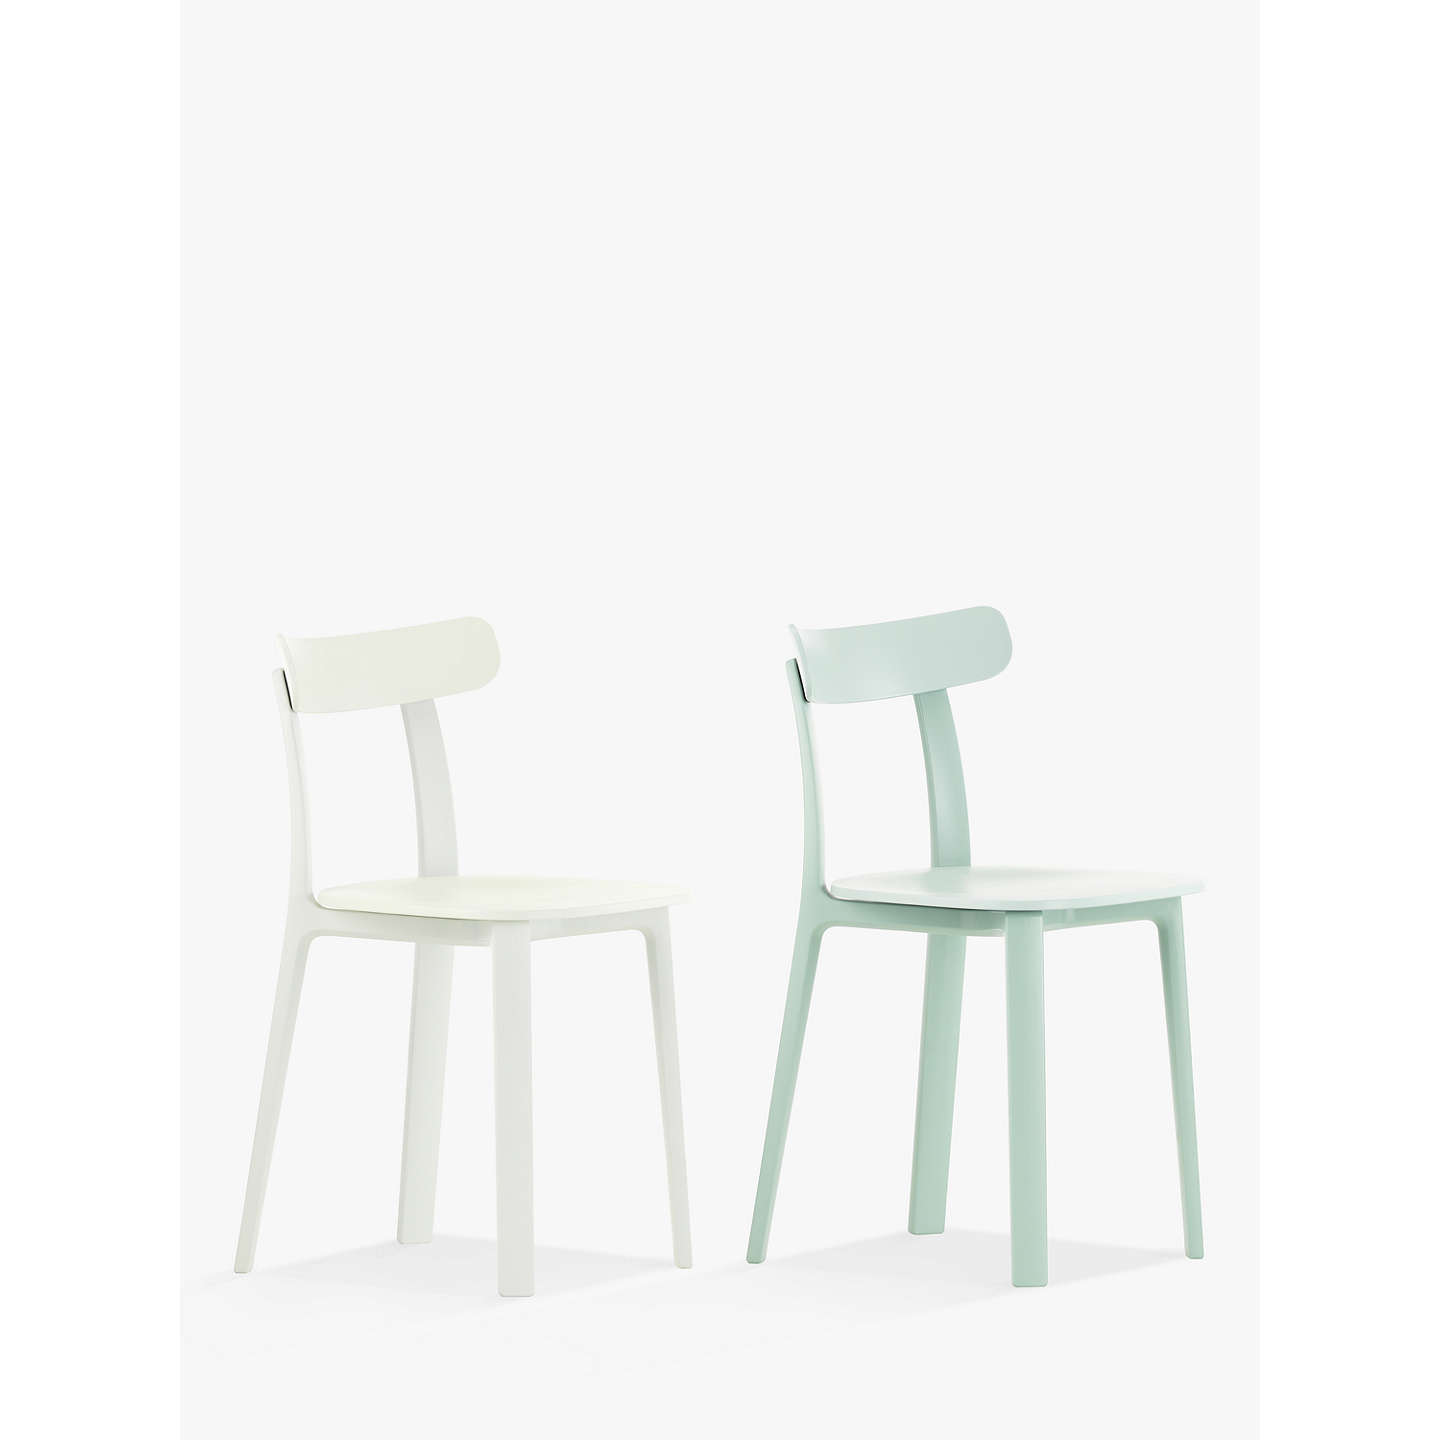 BuyVitra All Plastic Chair, Set of 2, White & Ice Grey Online at johnlewis.com